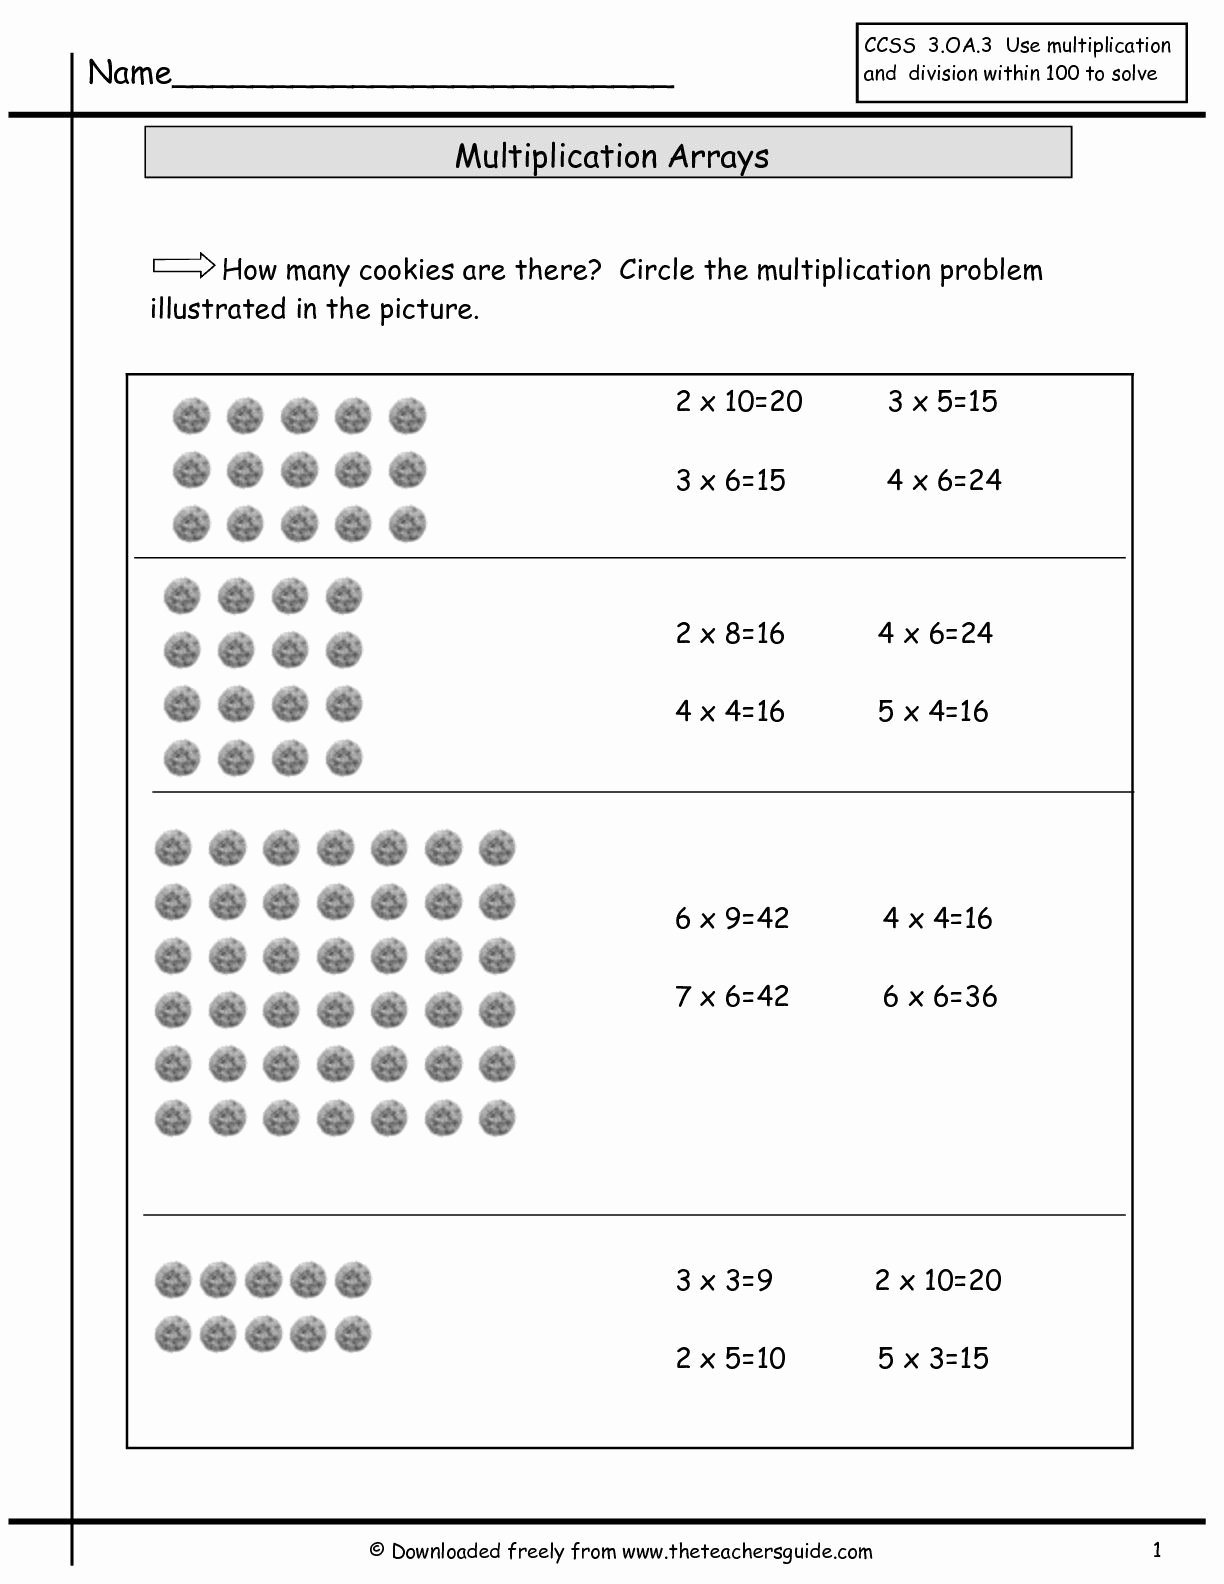 Multiplication Worksheets Using Arrays Awesome Multiplication Array Worksheets From the Teacher S Guide